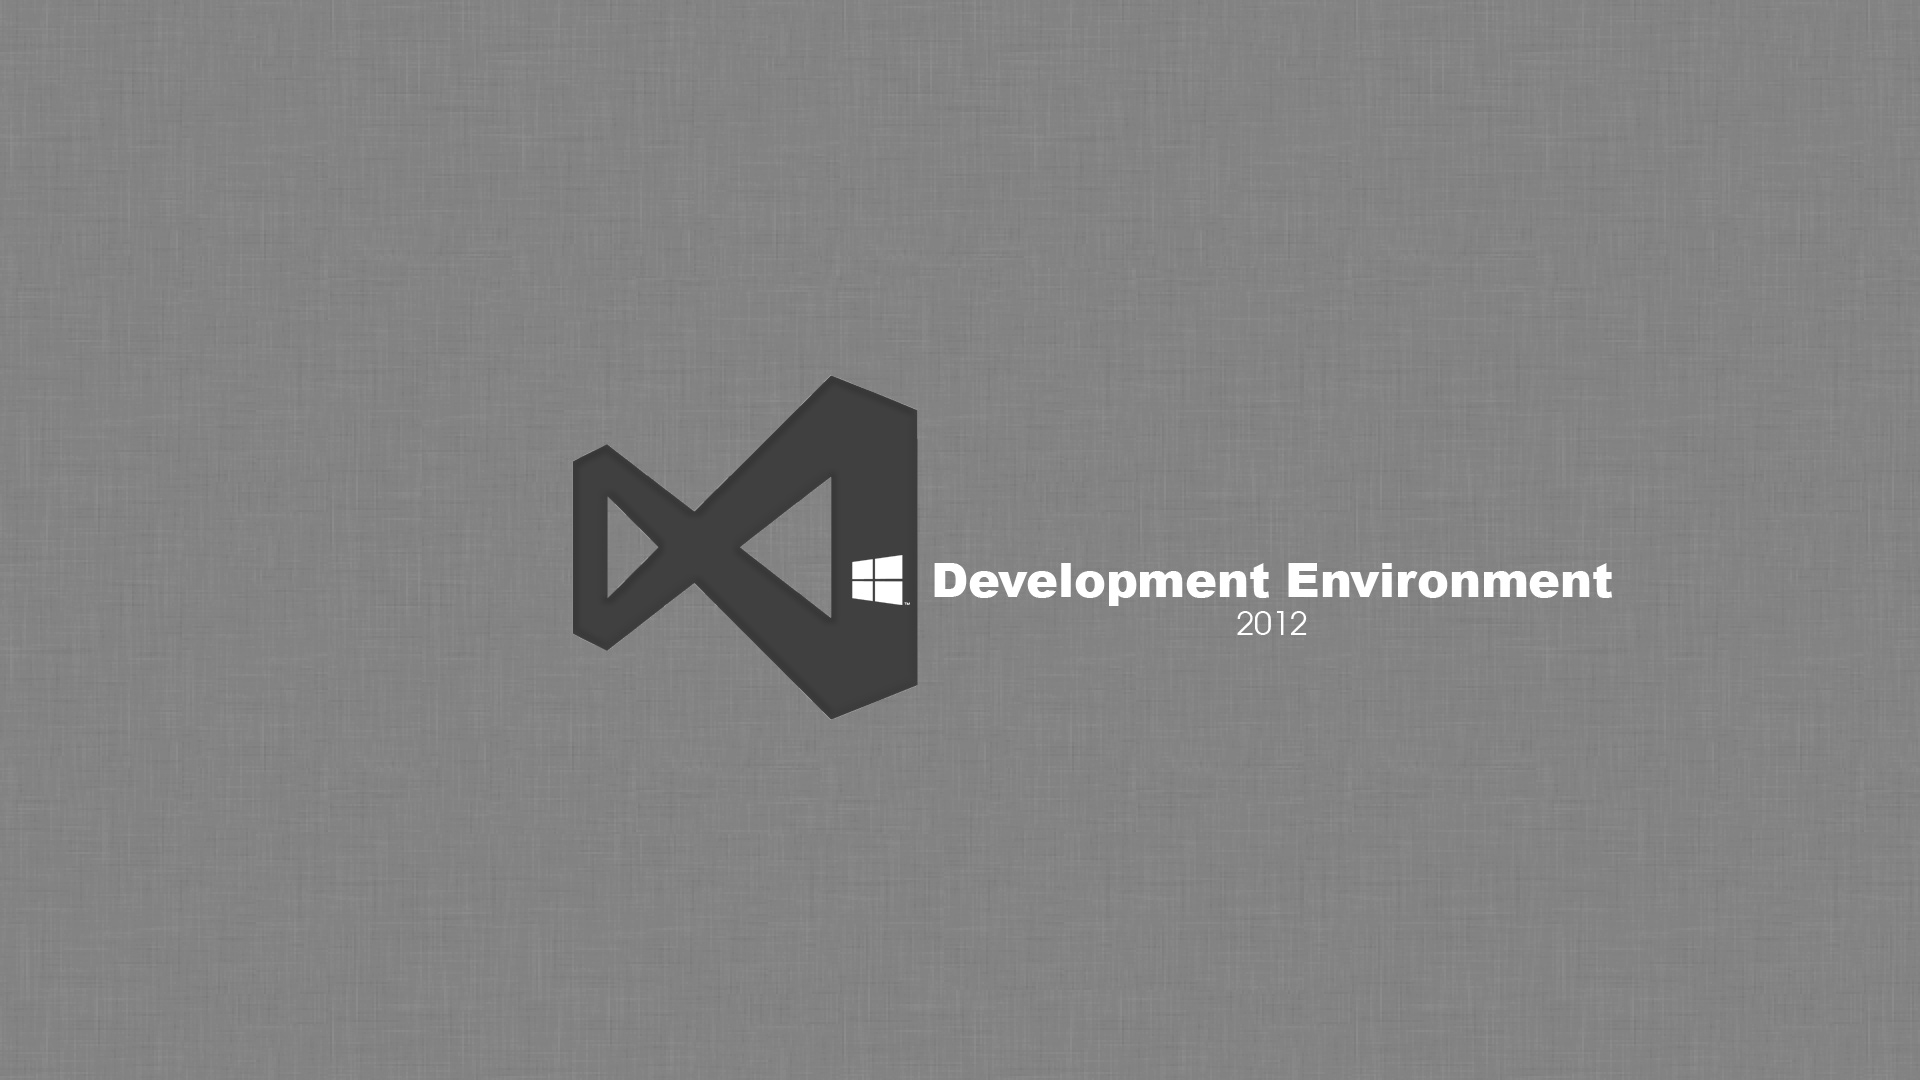 Visual Studio 2012 Wallpapers and Windows Theme v 30 with PSD 1920x1080